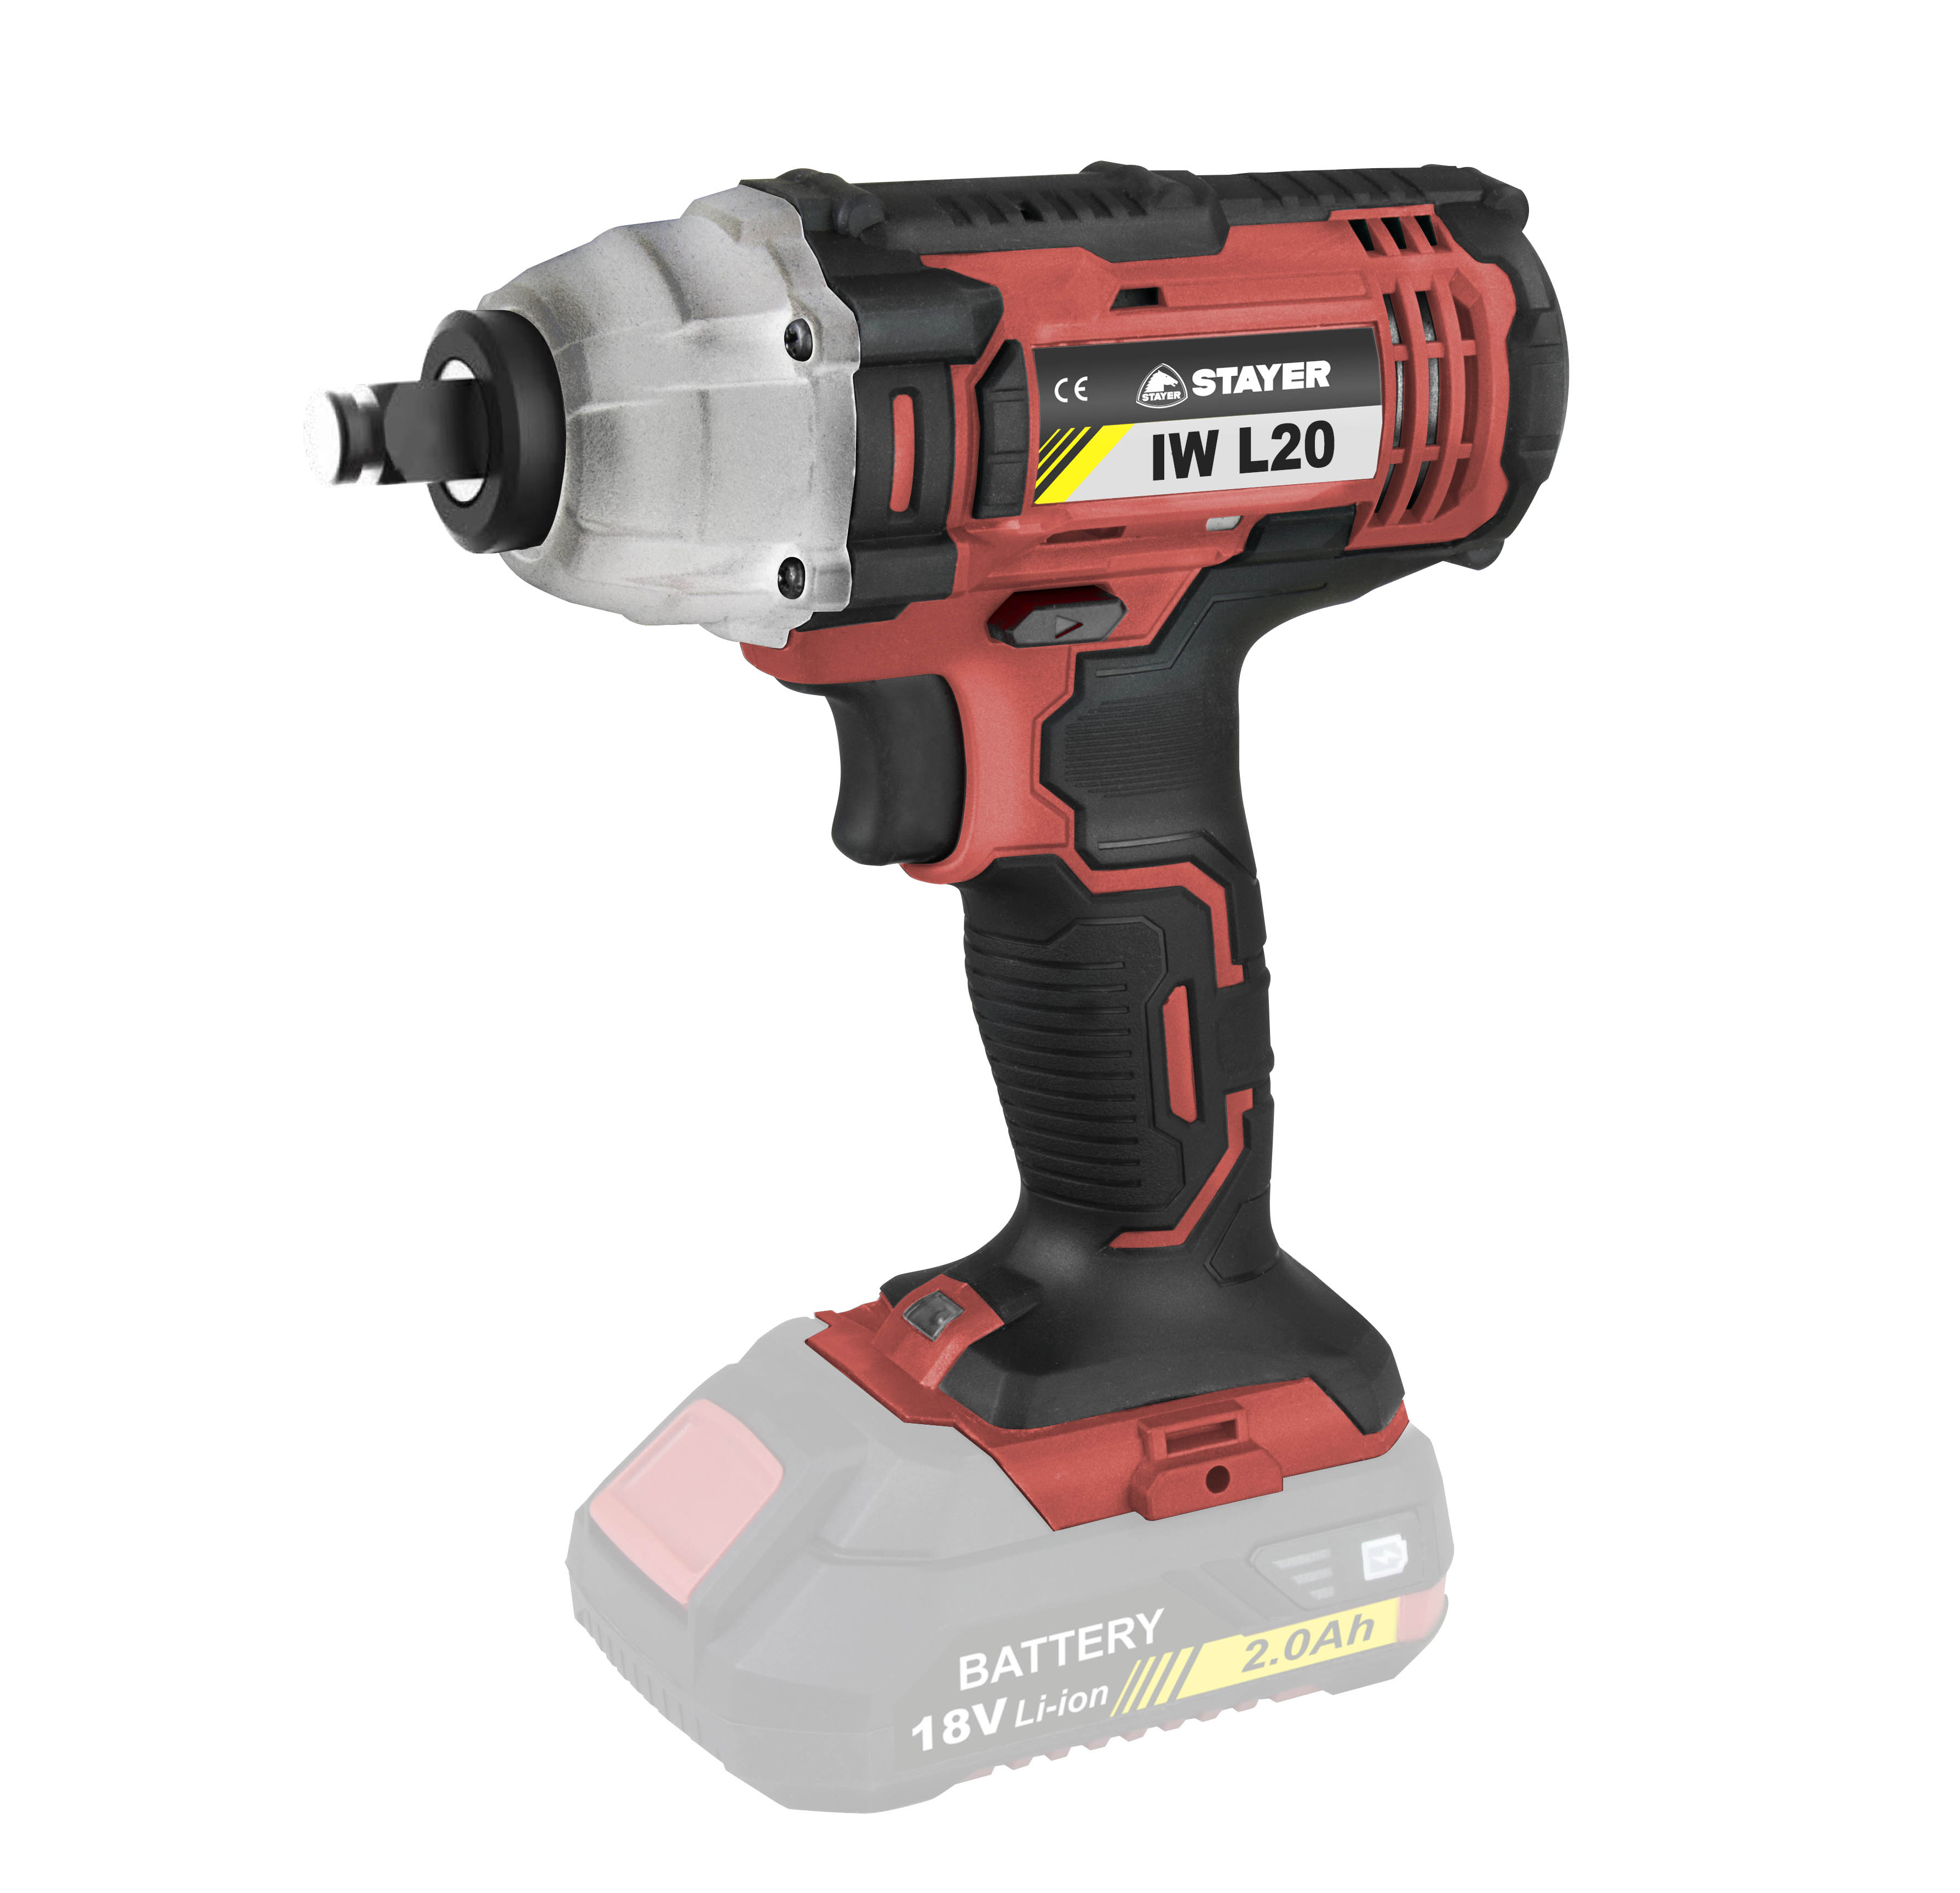 IMPACT WRENCH IW L20